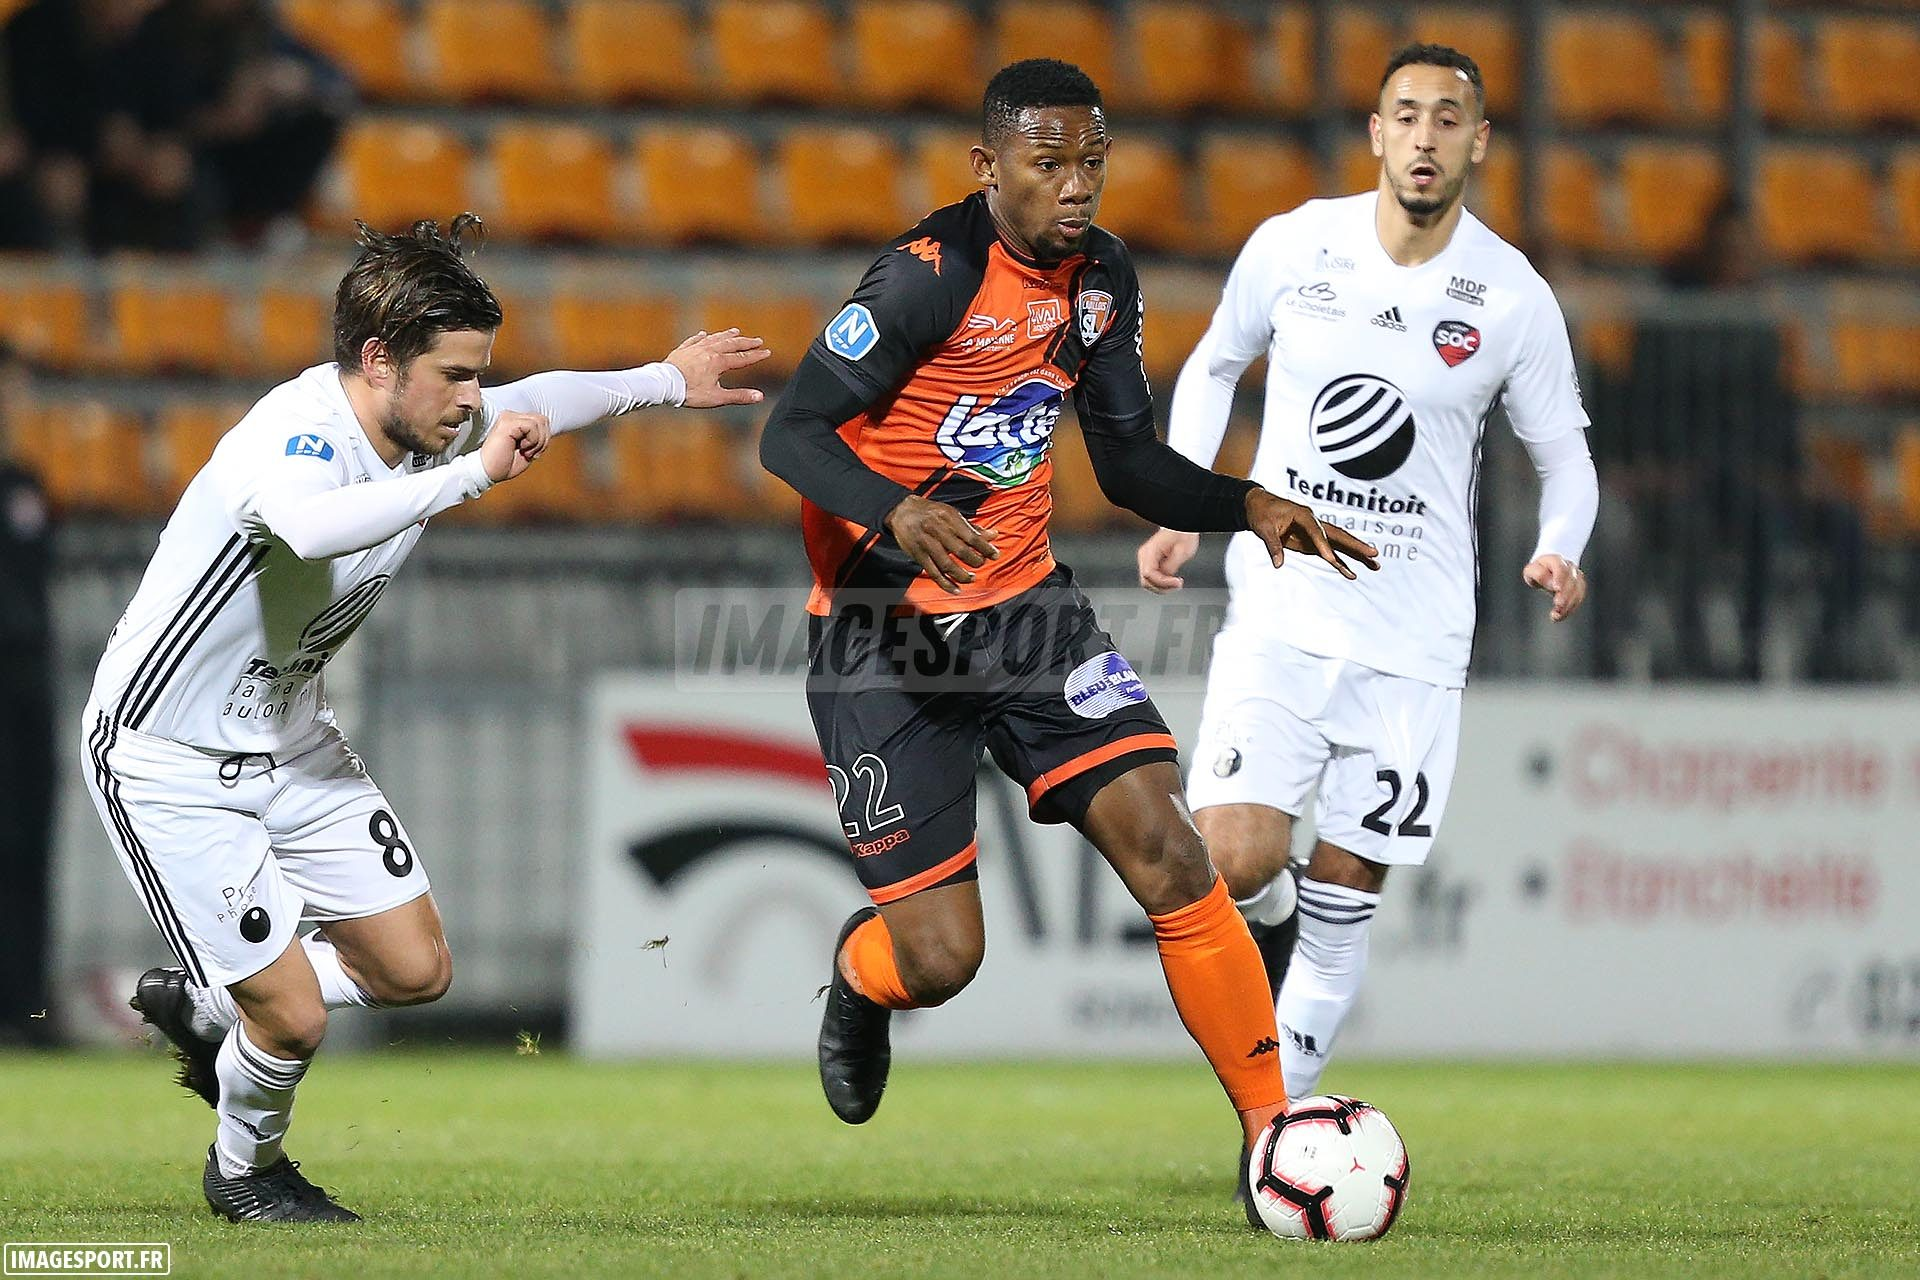 national--laval-cholet-football_20